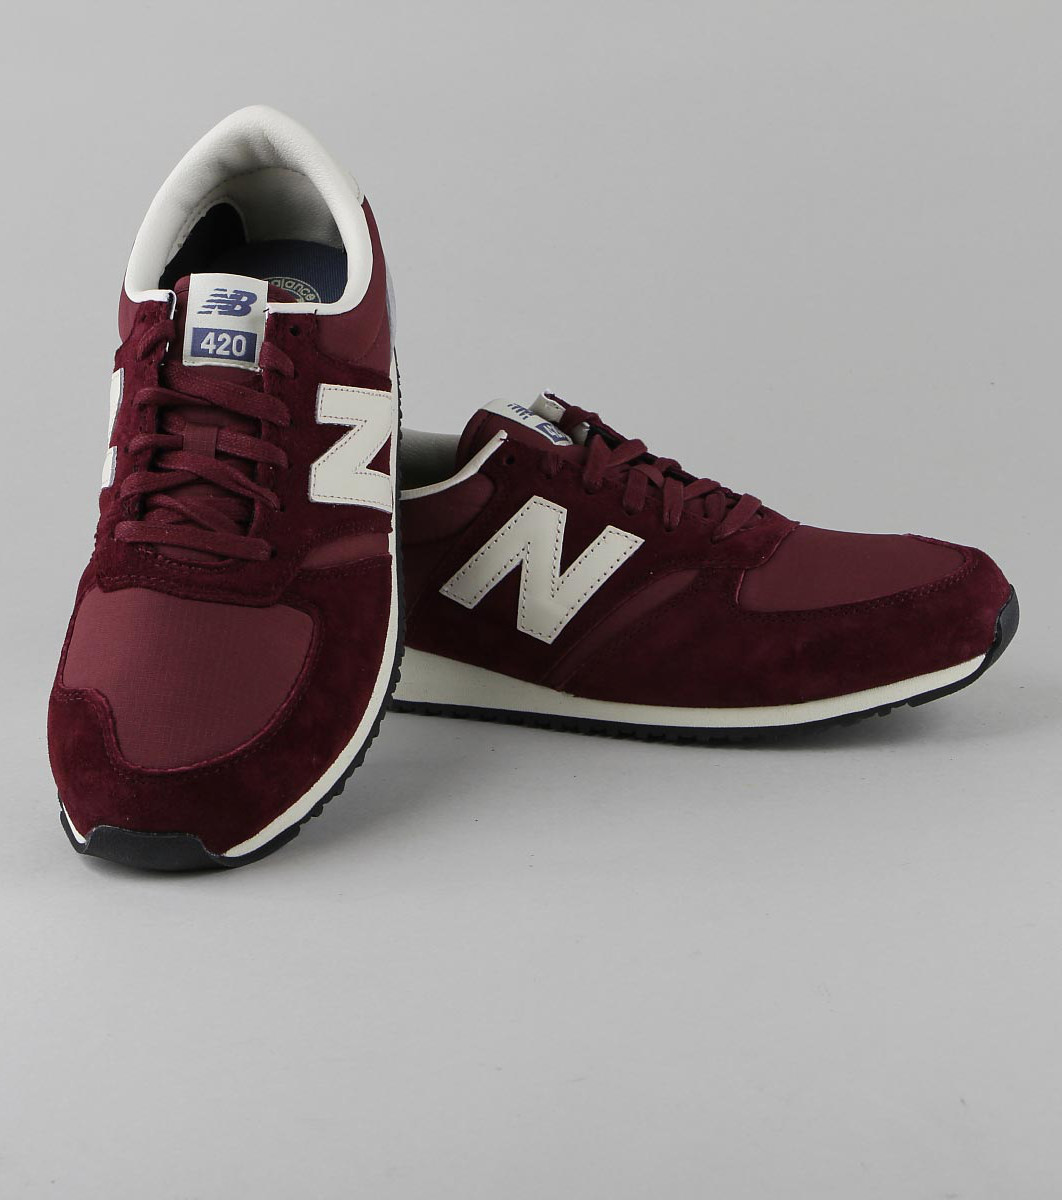 new balance 420 bordeaux rose